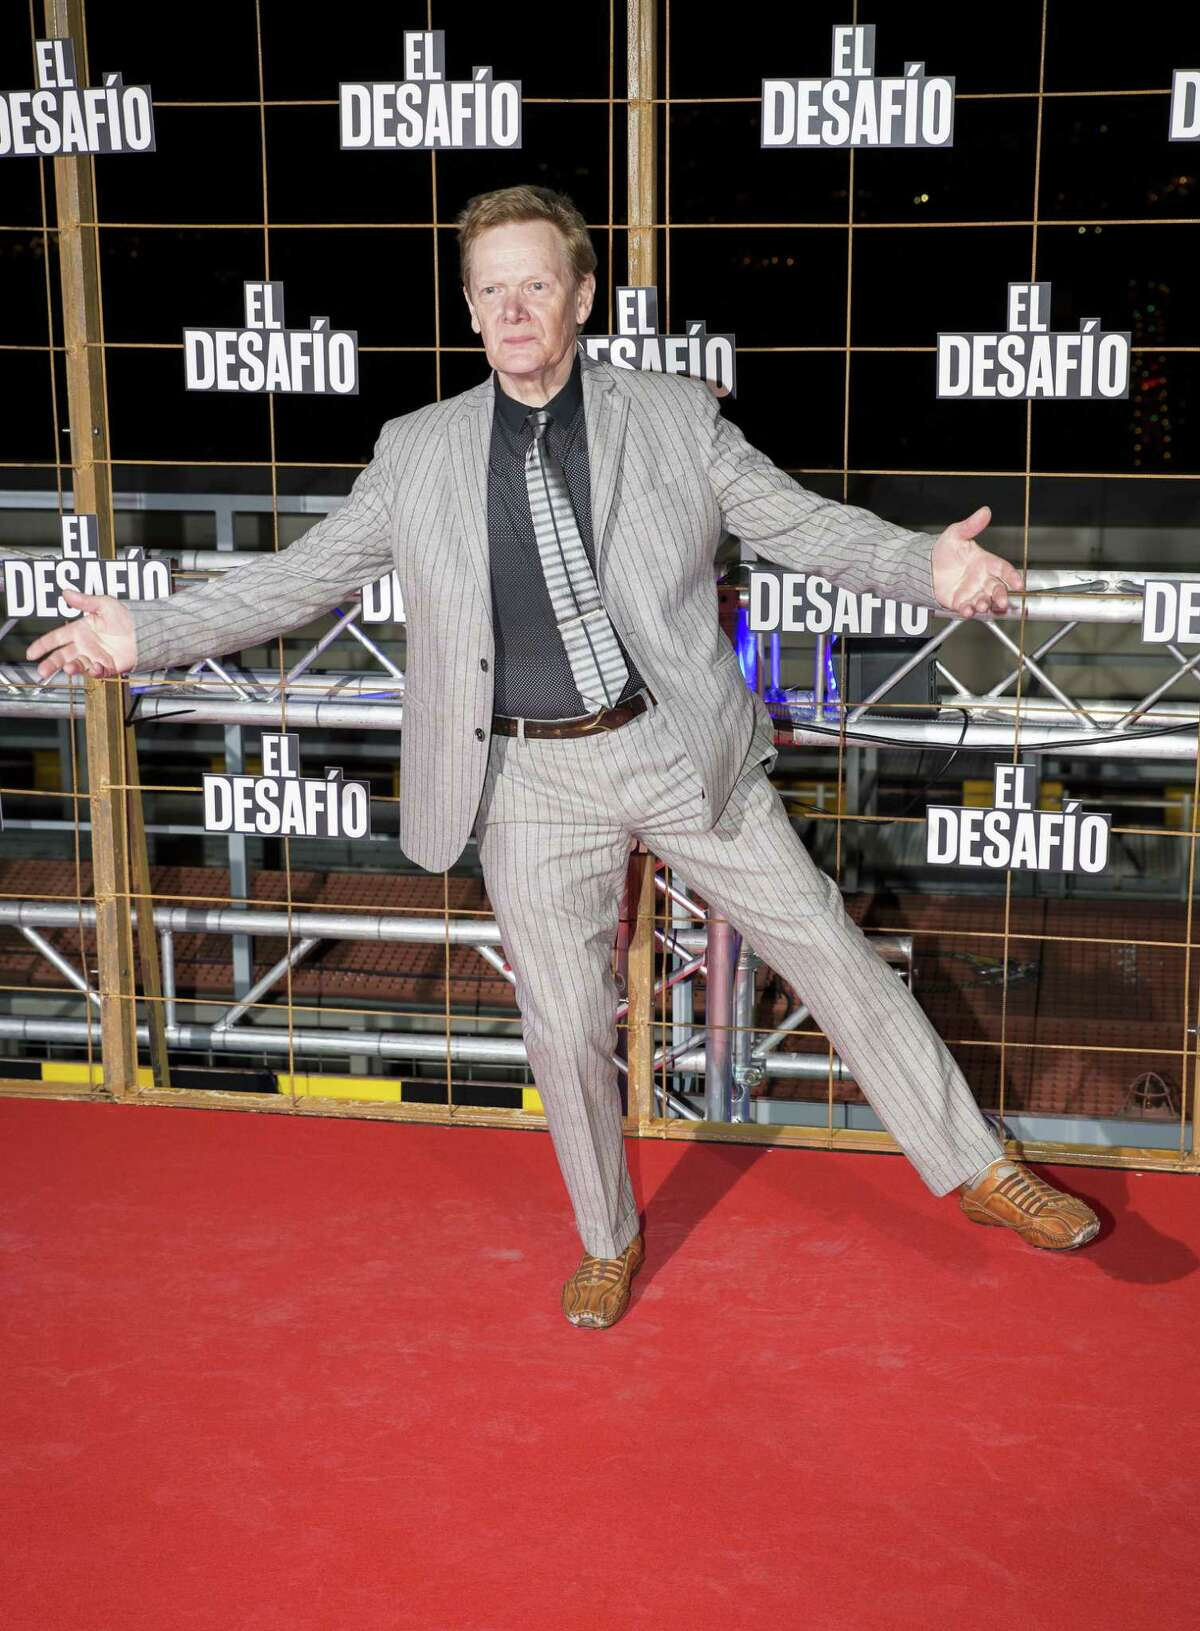 MADRID, SPAIN - DECEMBER 10: Philippe Petit attends 'El Desafio' premiere on December 10, 2015 in Madrid, Spain. (Photo by Europa Press/Europa Press via Getty Images)